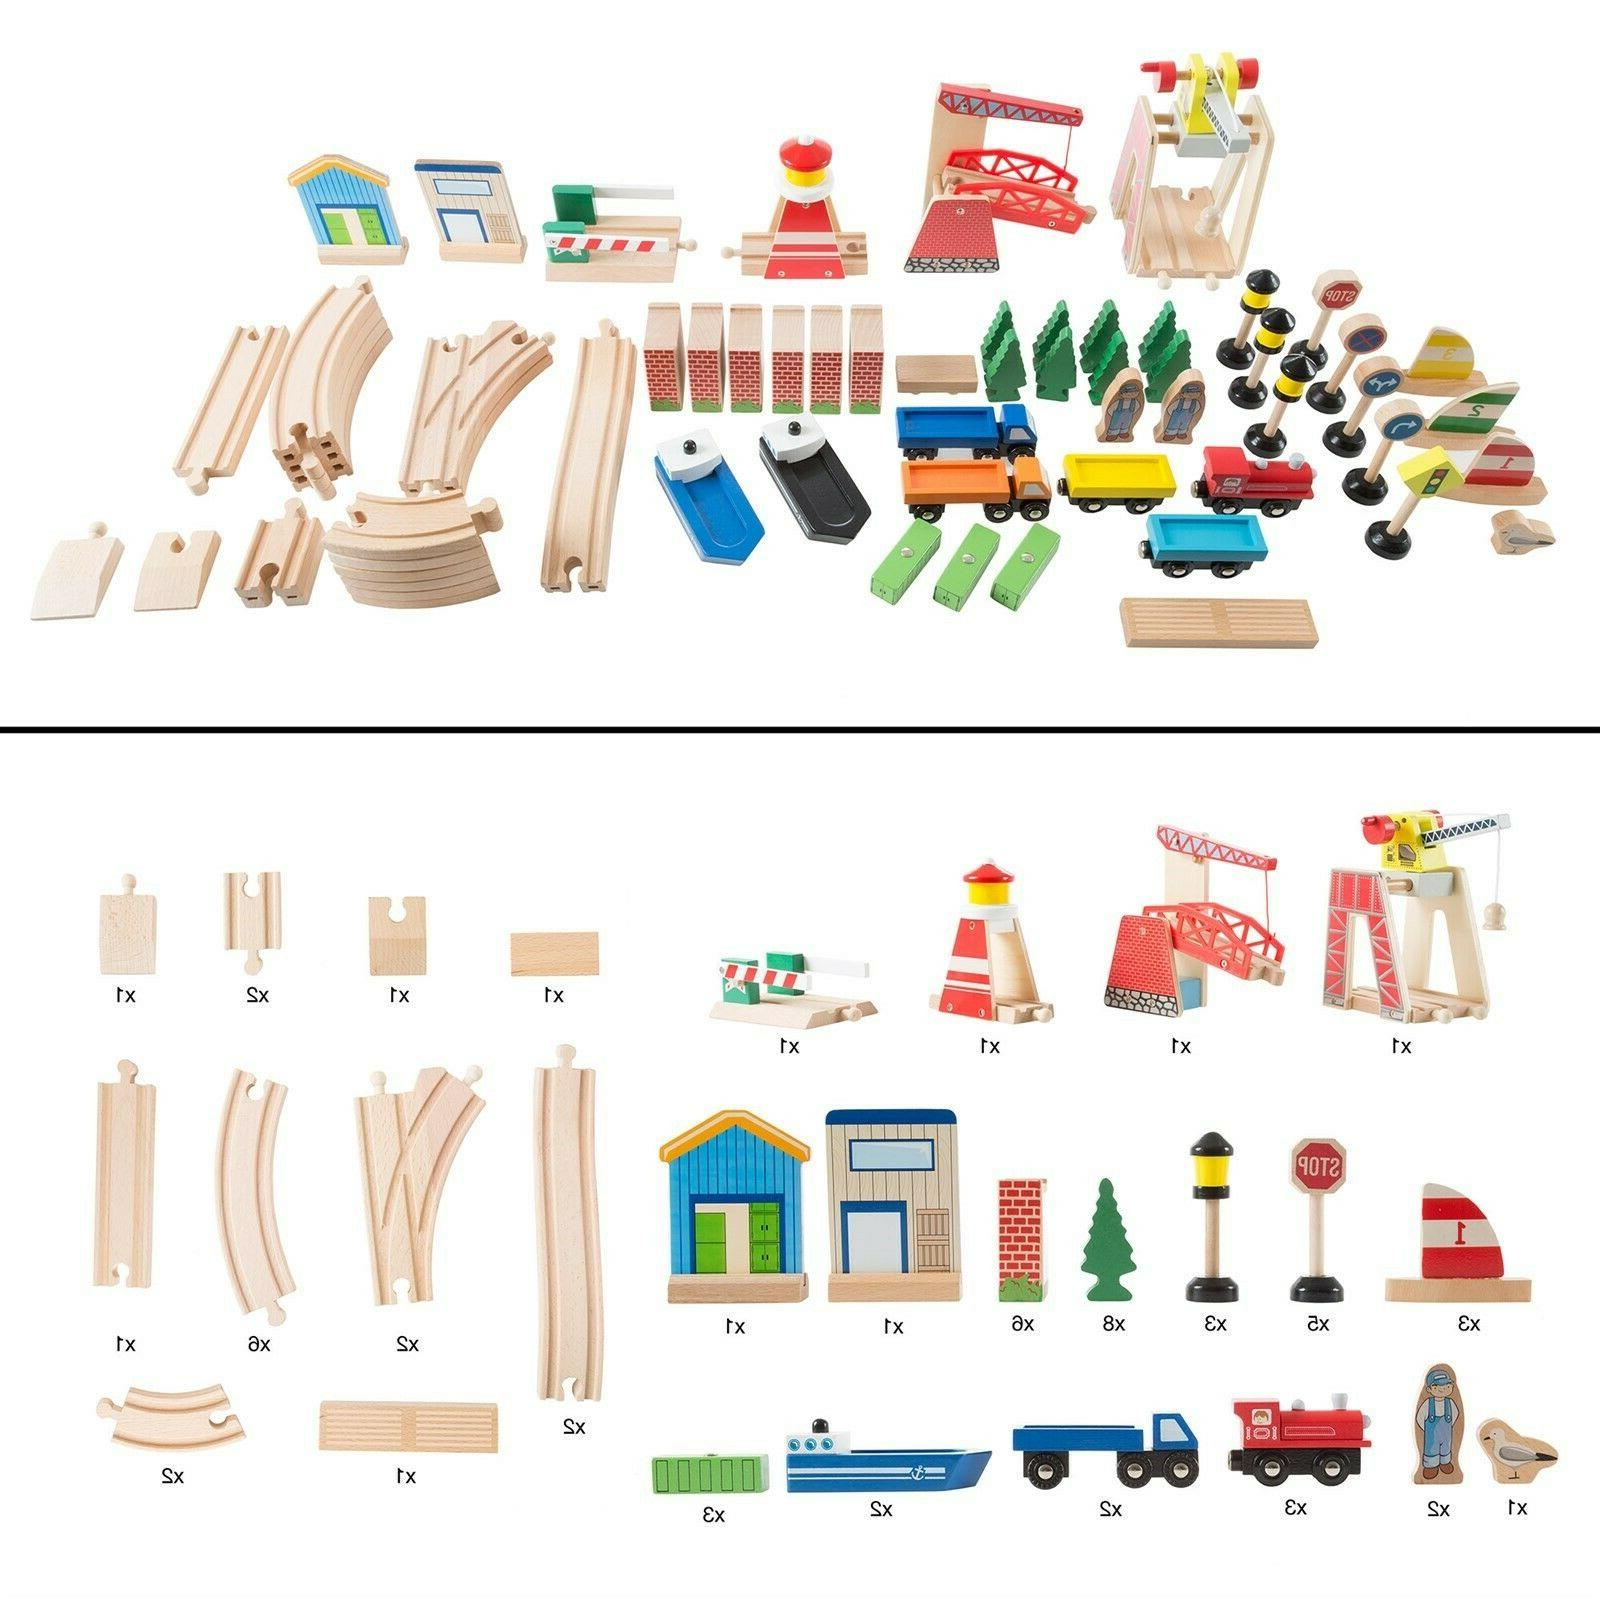 65 Play Wooden Train Accessories and Play 33 22